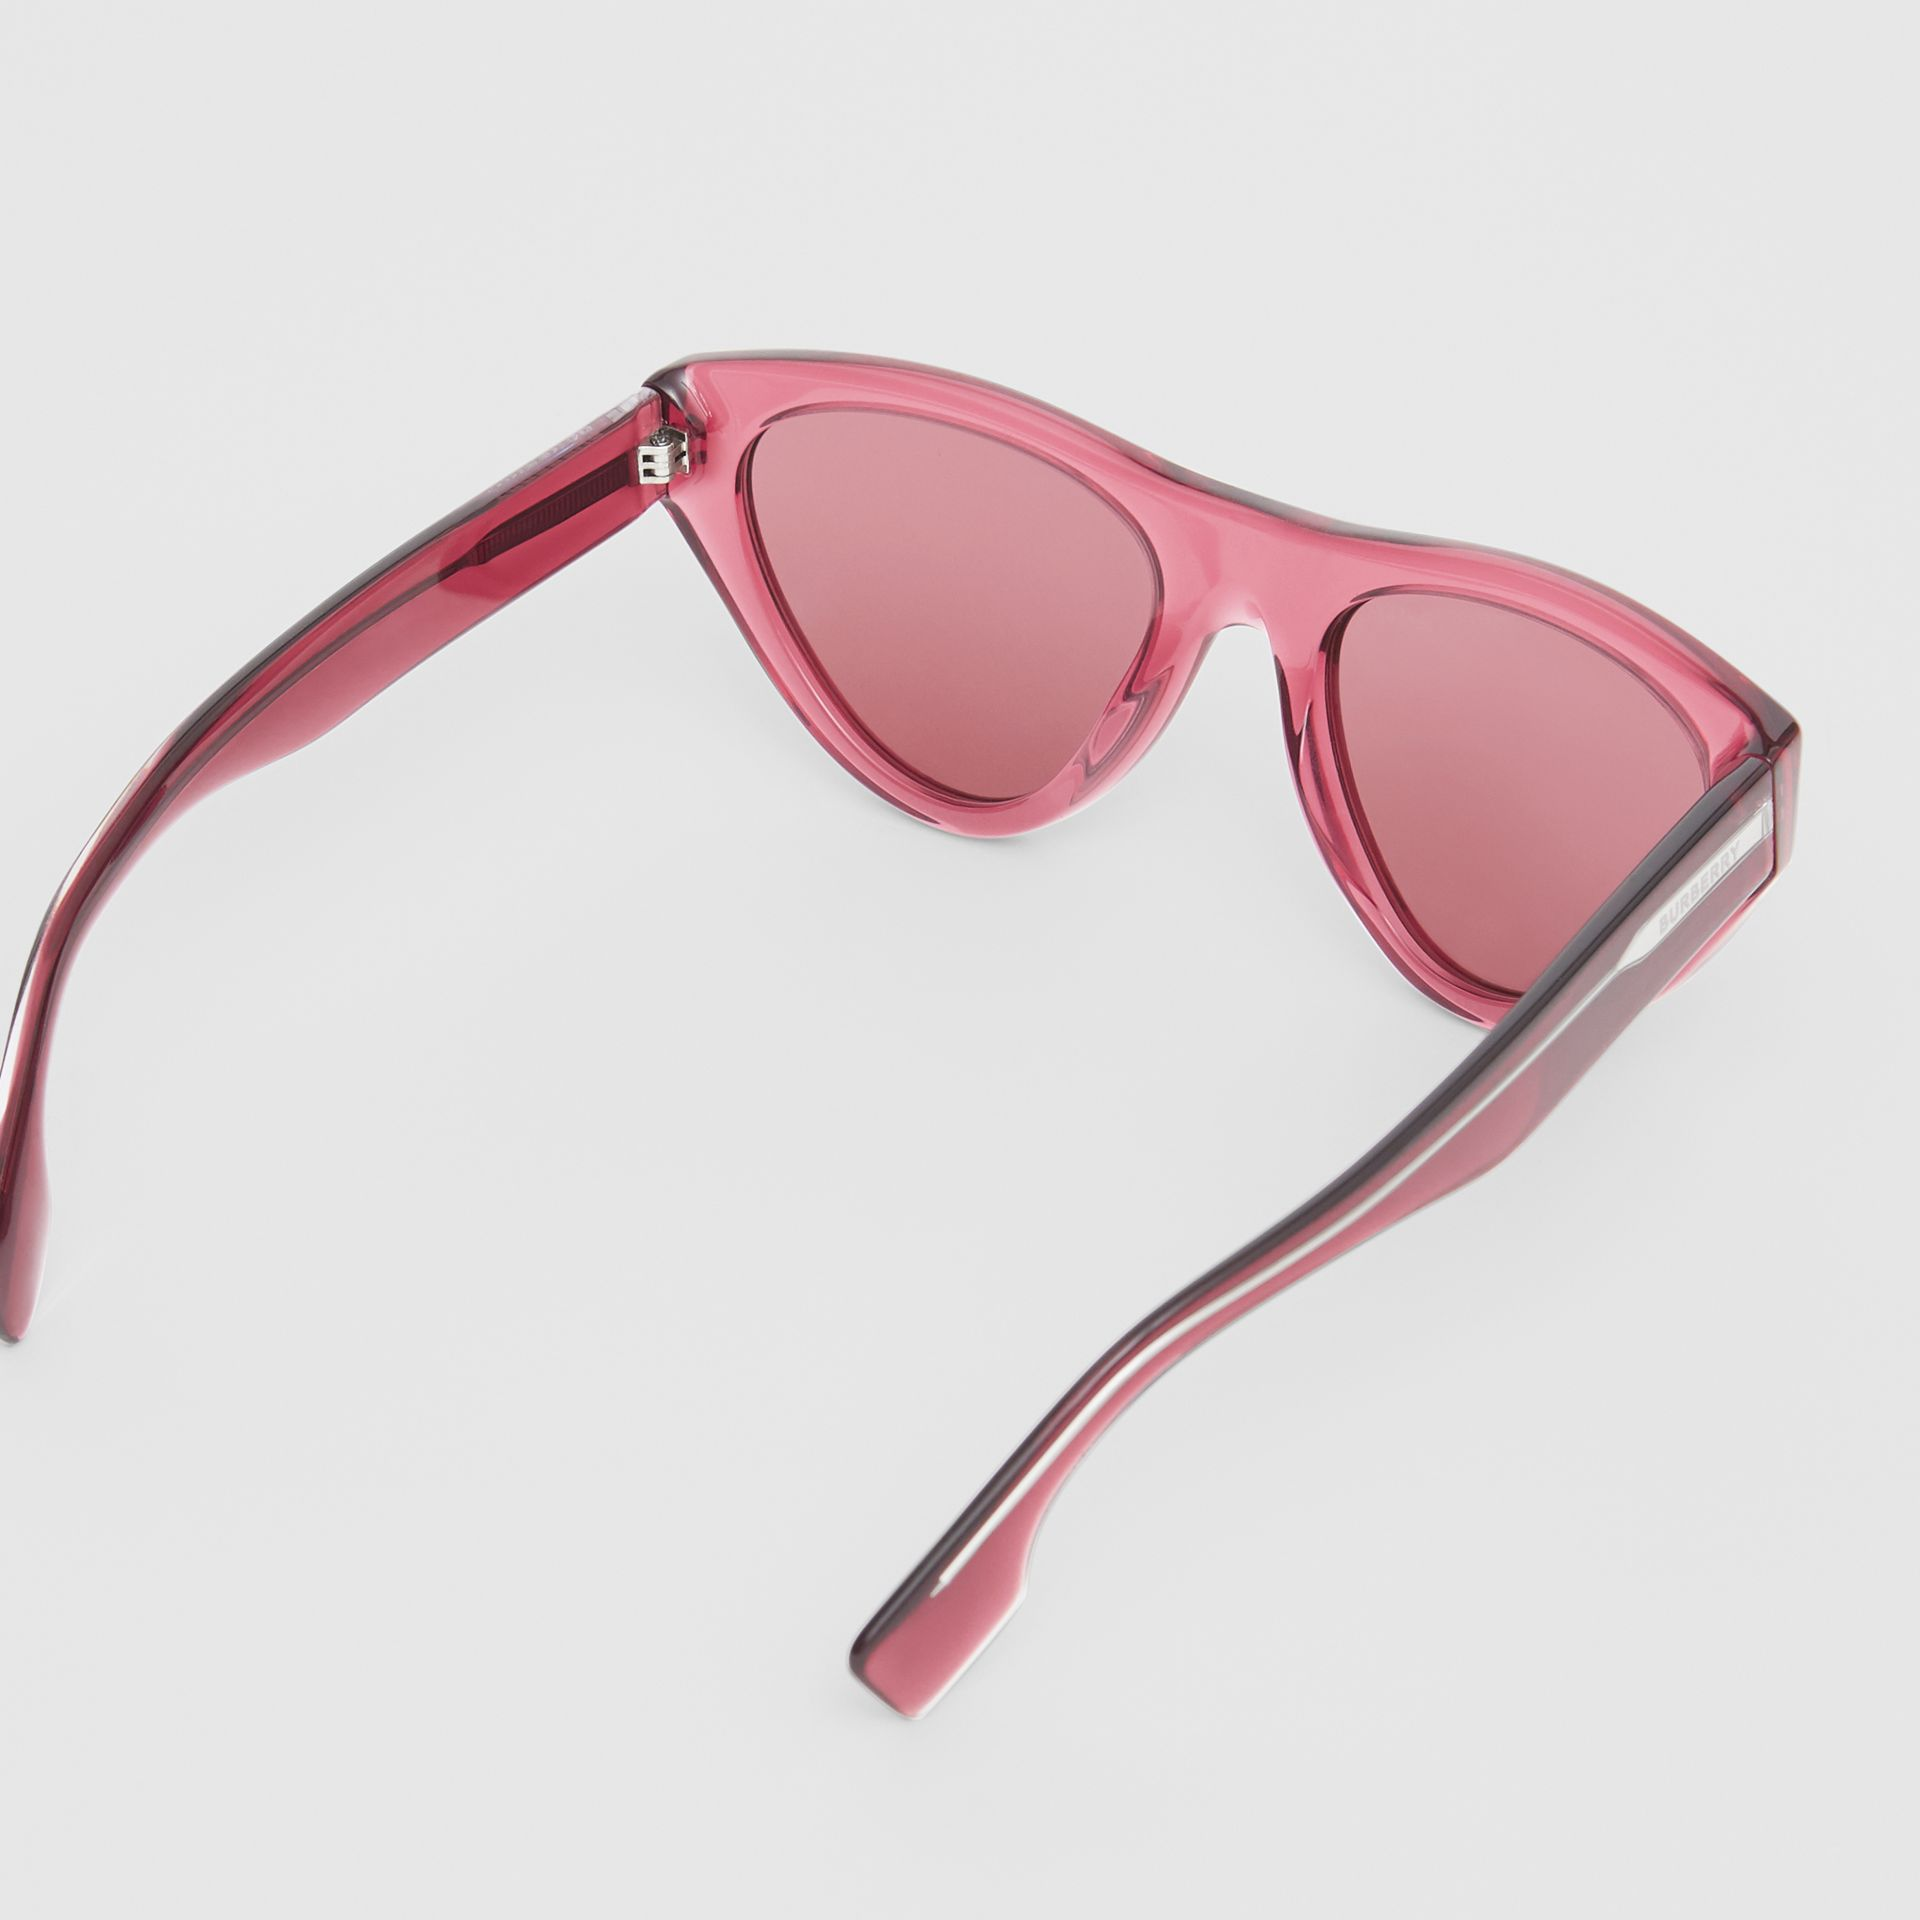 Triangular Frame Sunglasses in Cranberry - Women | Burberry - gallery image 4